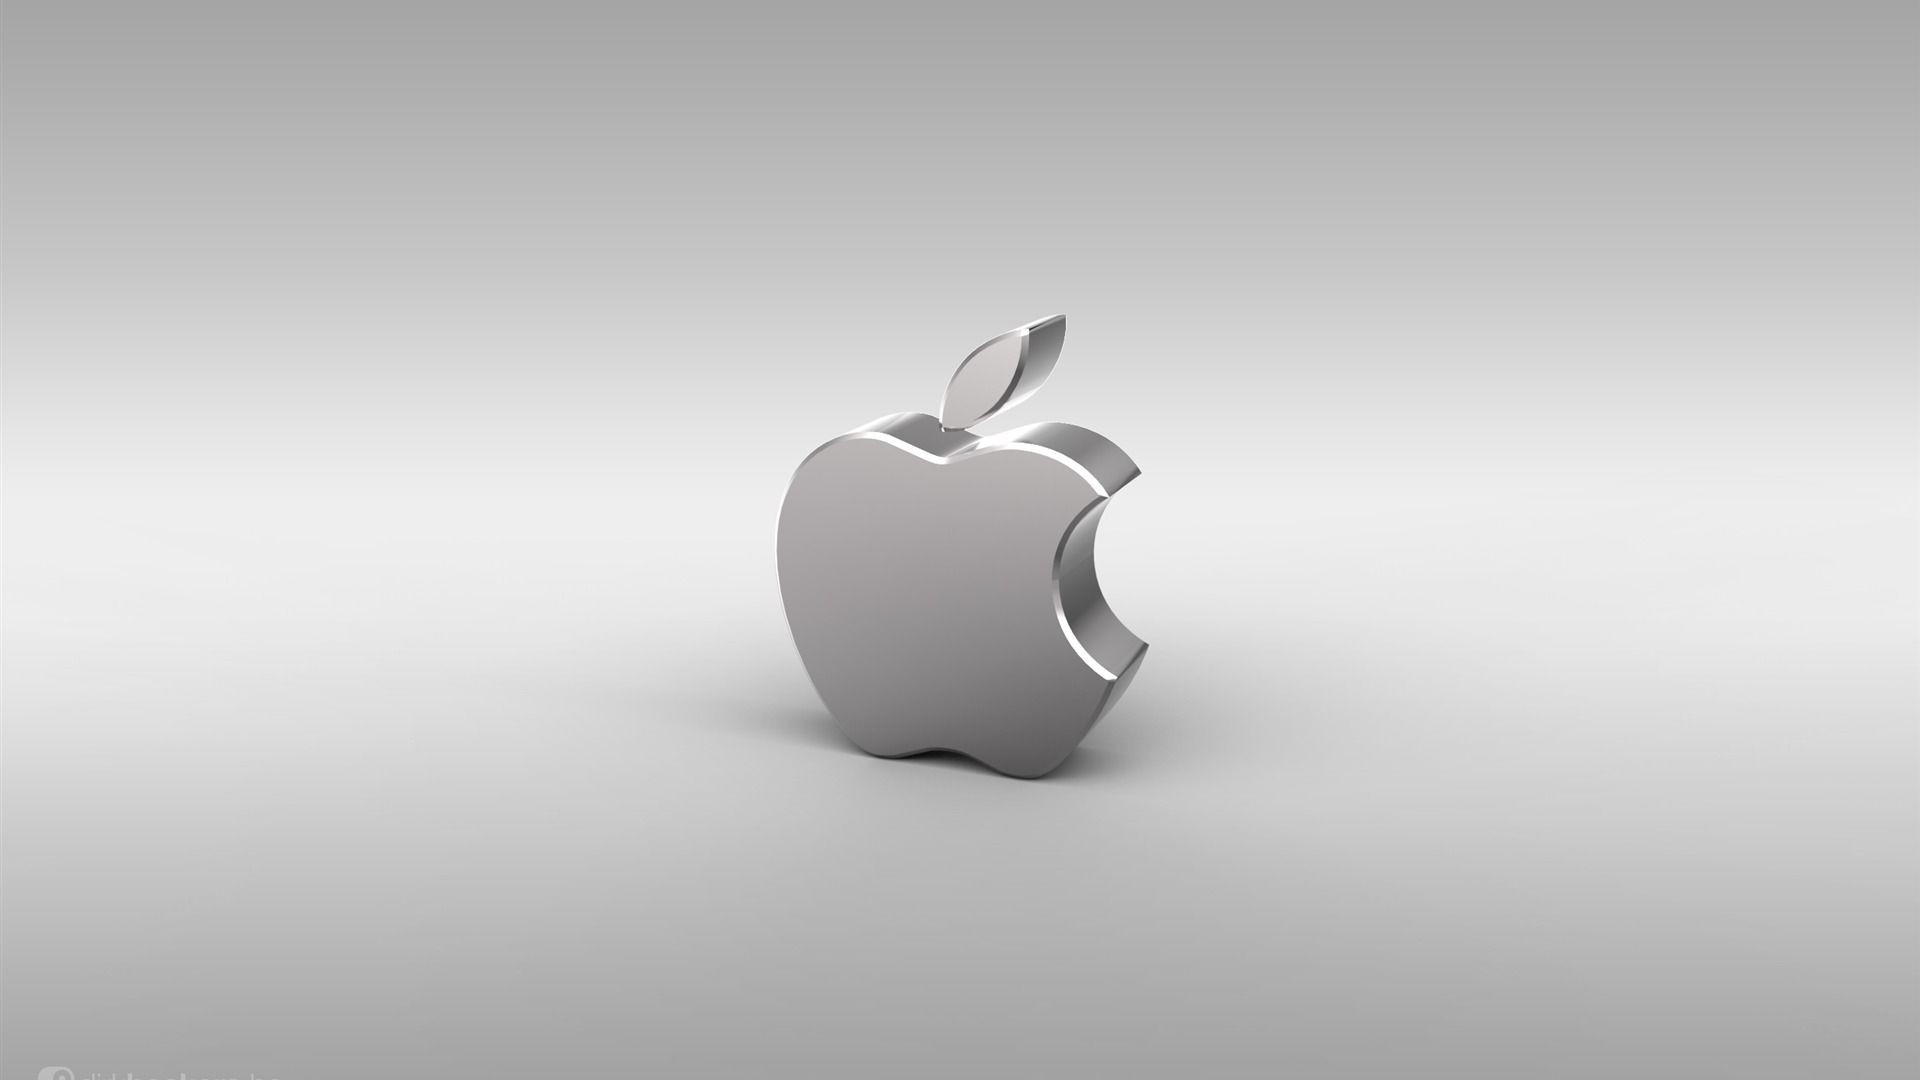 1920x1080 silver apple logo think different apple mac desktop wallpapers